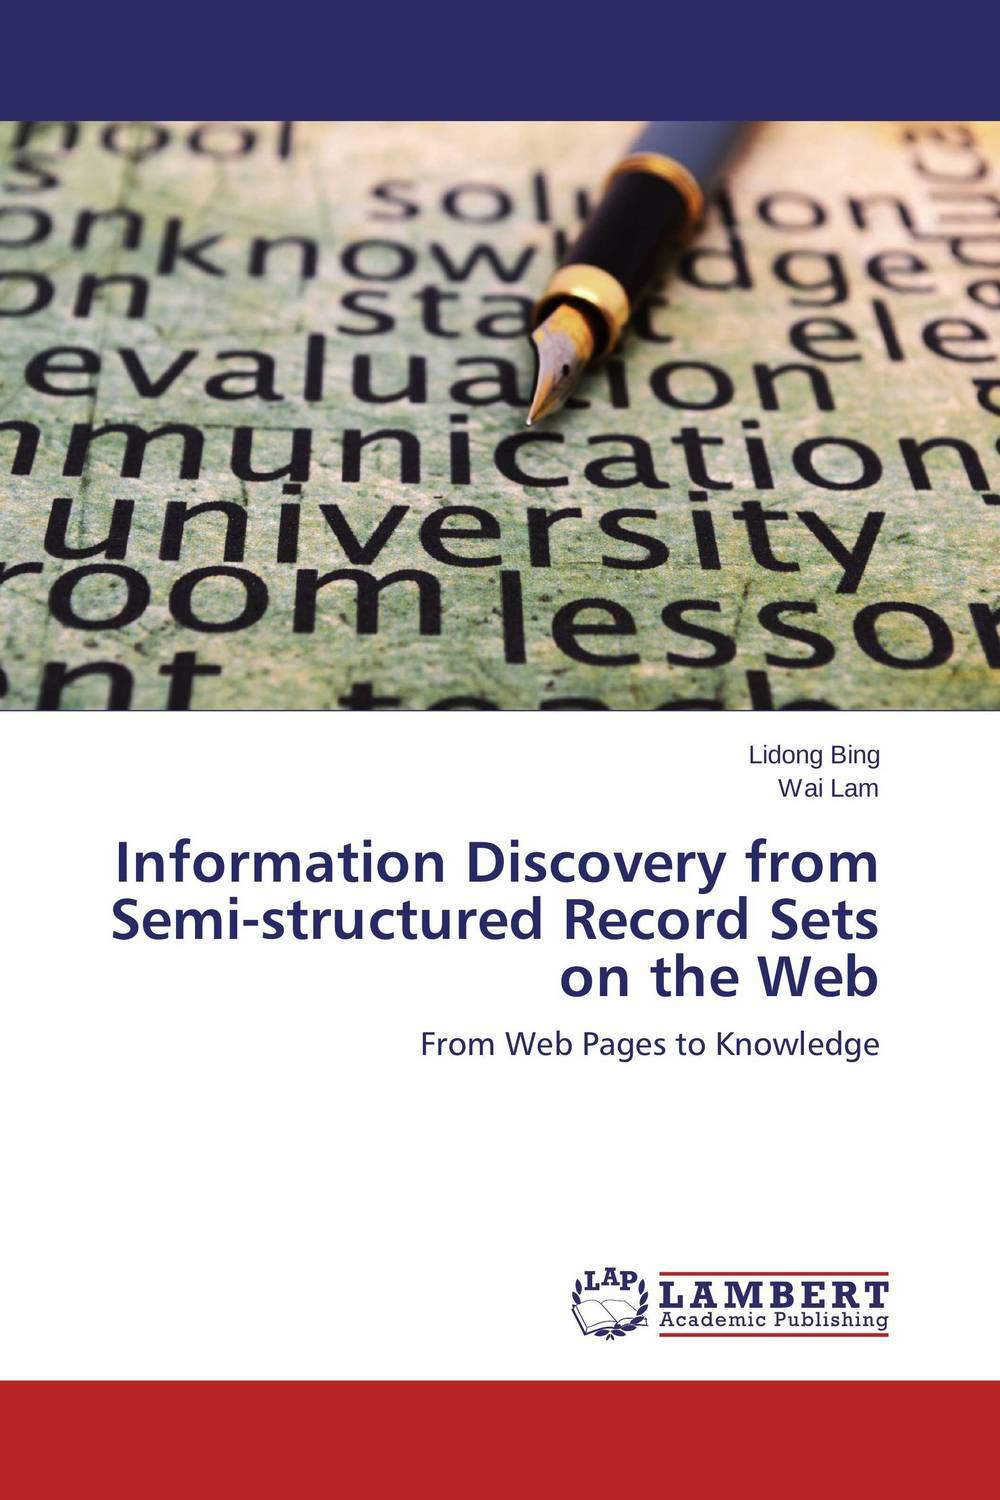 Information Discovery from Semi-structured Record Sets on the Web